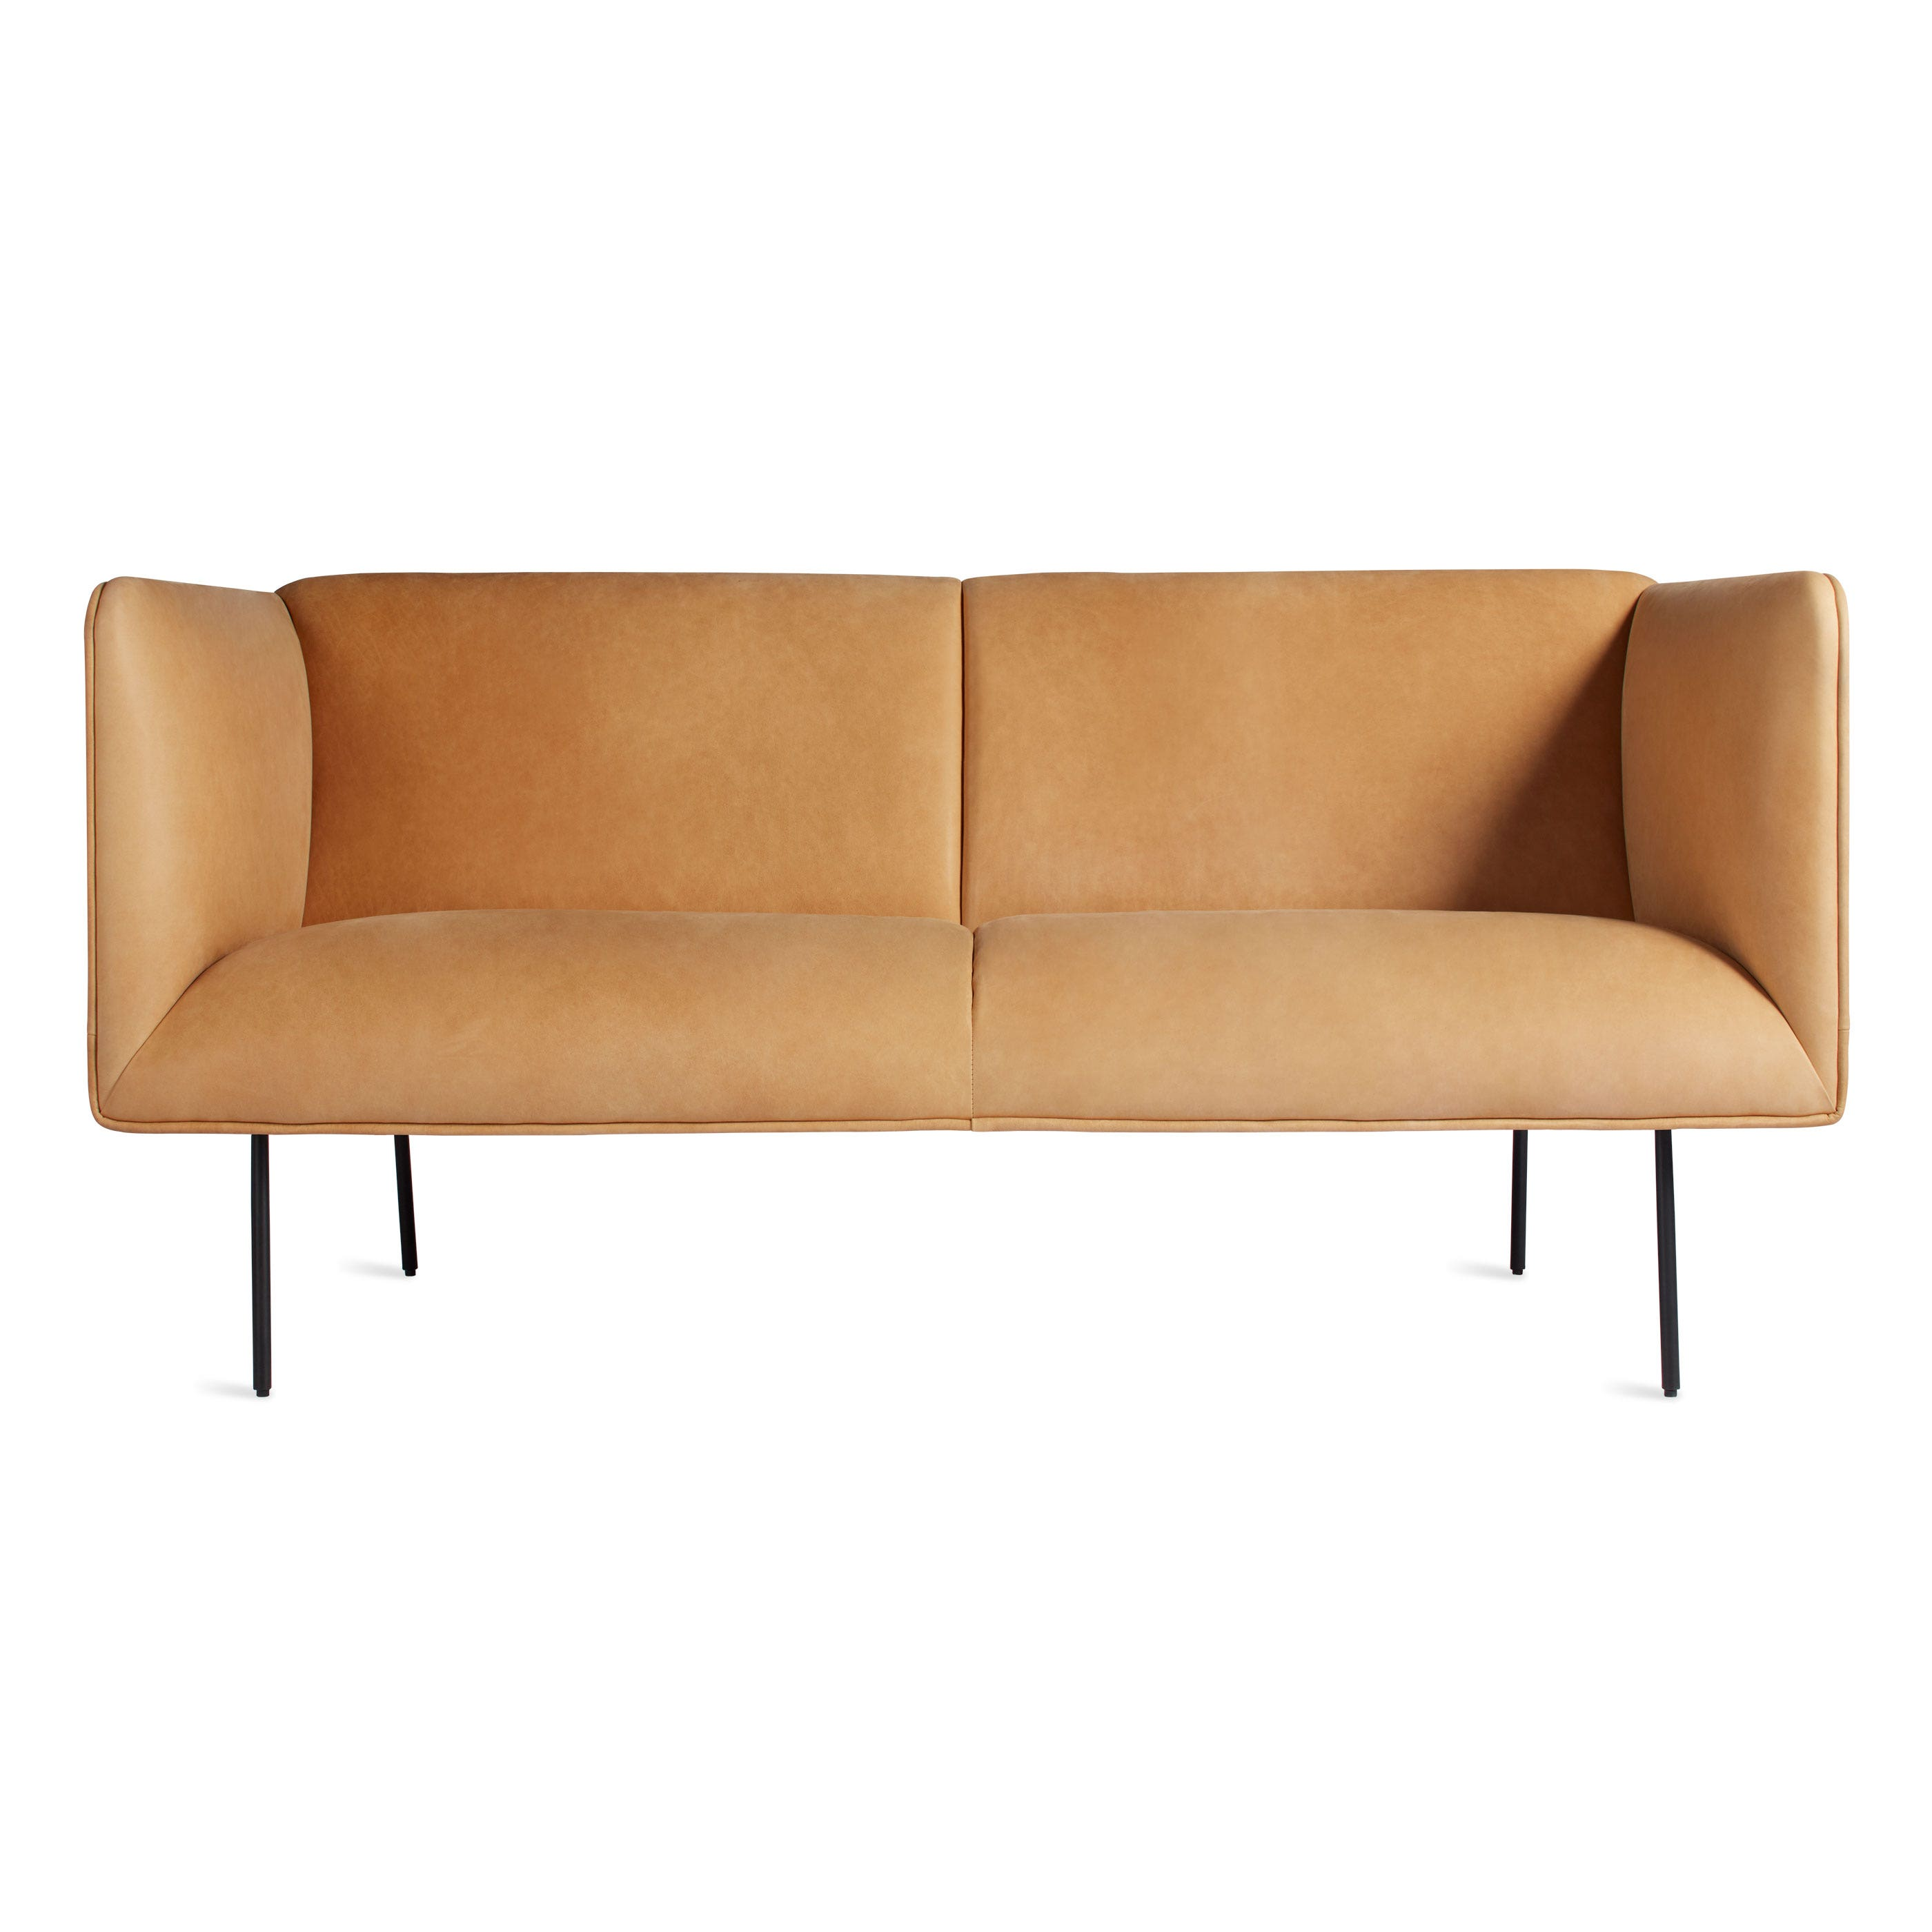 Bonnie Studio Sofa Modern Designer Sofas Couches Blu Dot